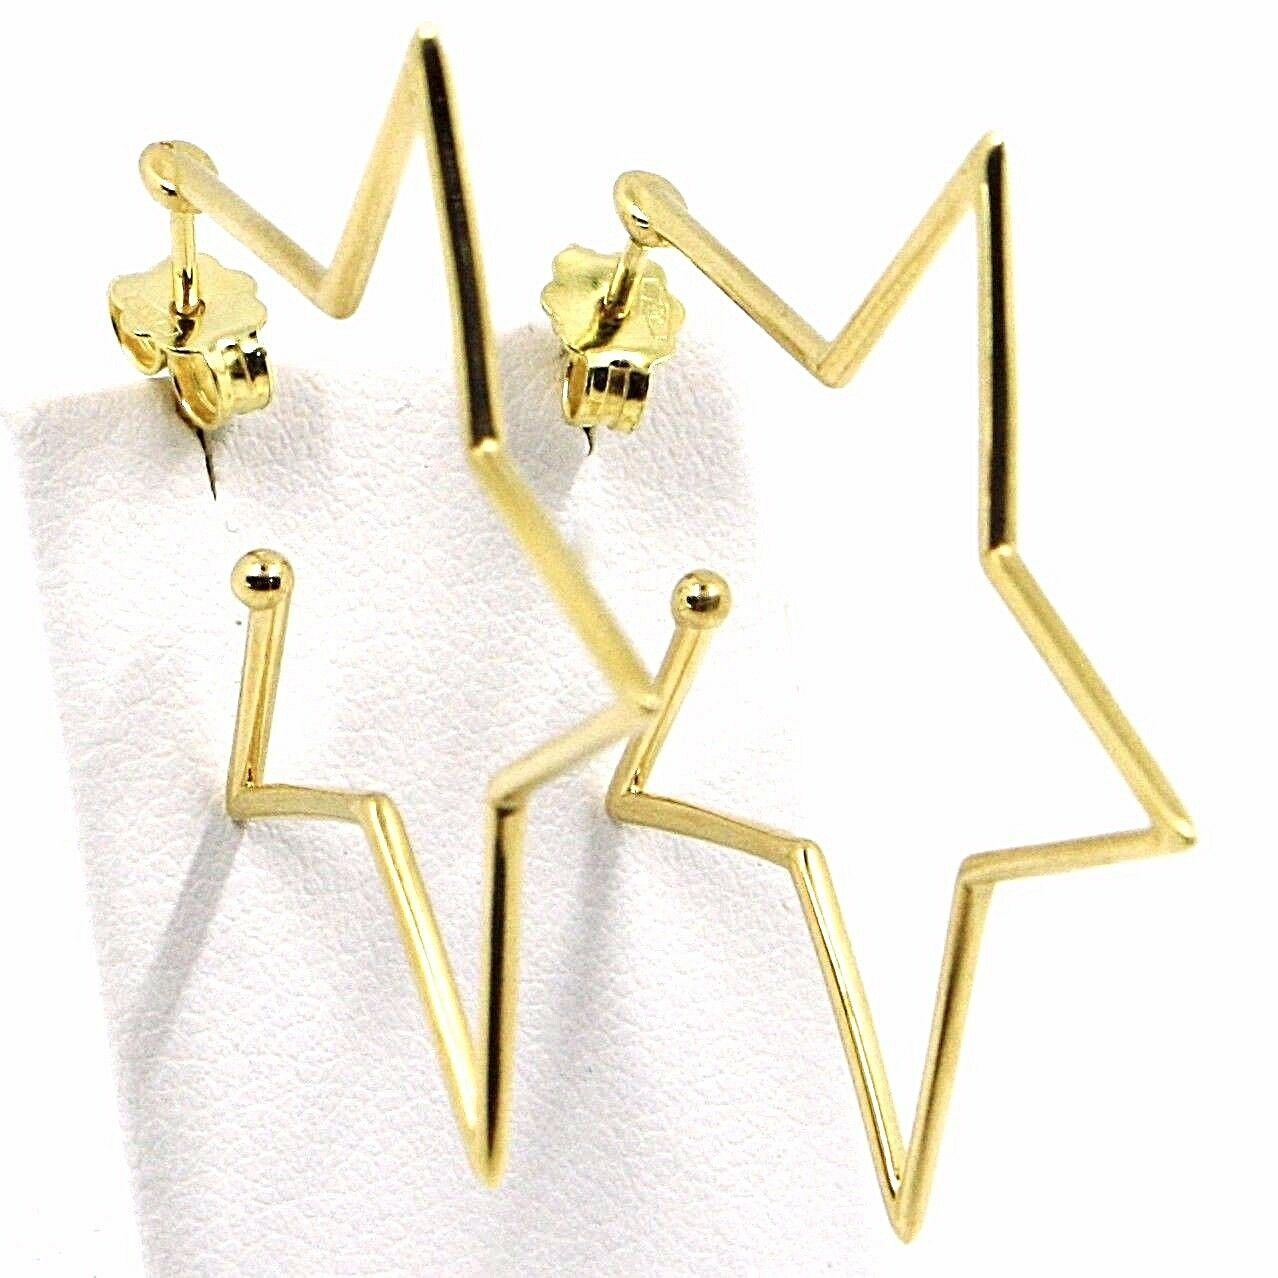 18K YELLOW GOLD PENDANT STAR EARRINGS, 1.4 INCHES LENGTH, MADE IN ITALY